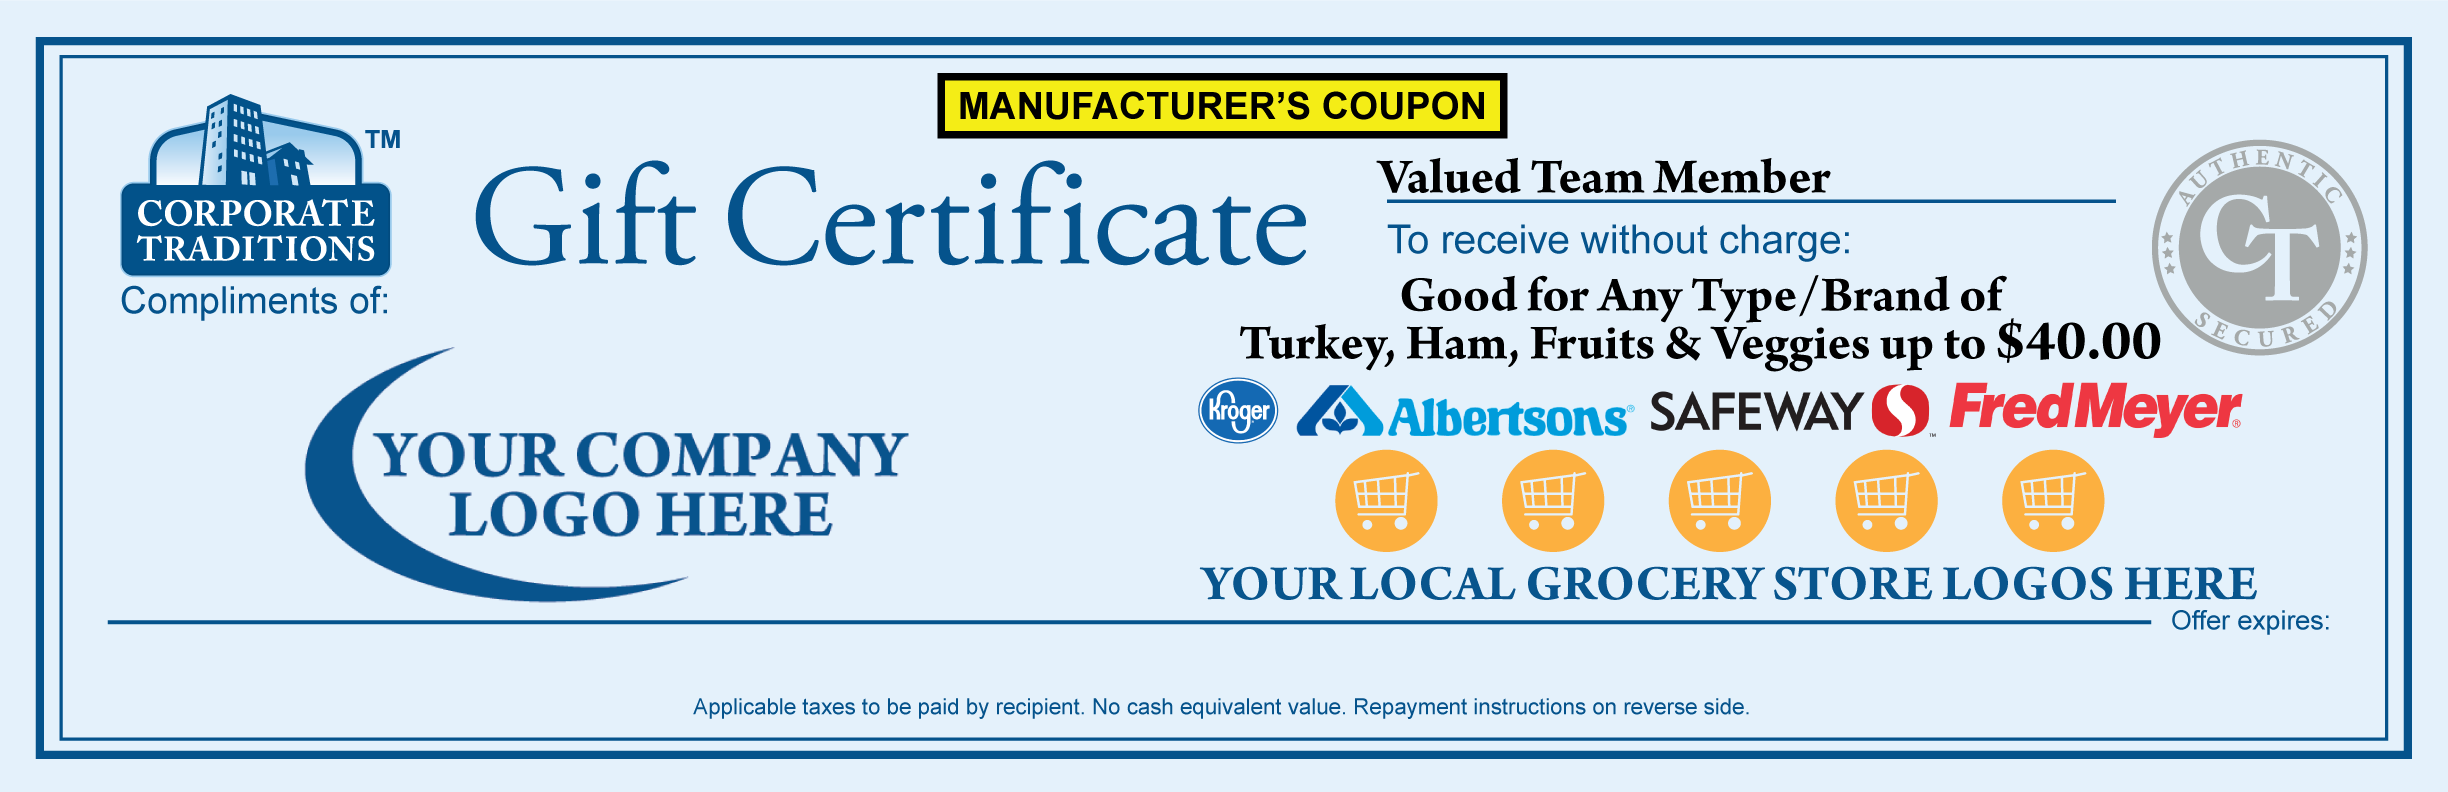 Turkey, Ham, Fruits and Veggies Gift Certificate: $45.00 Certificate 1000-4999 Qty